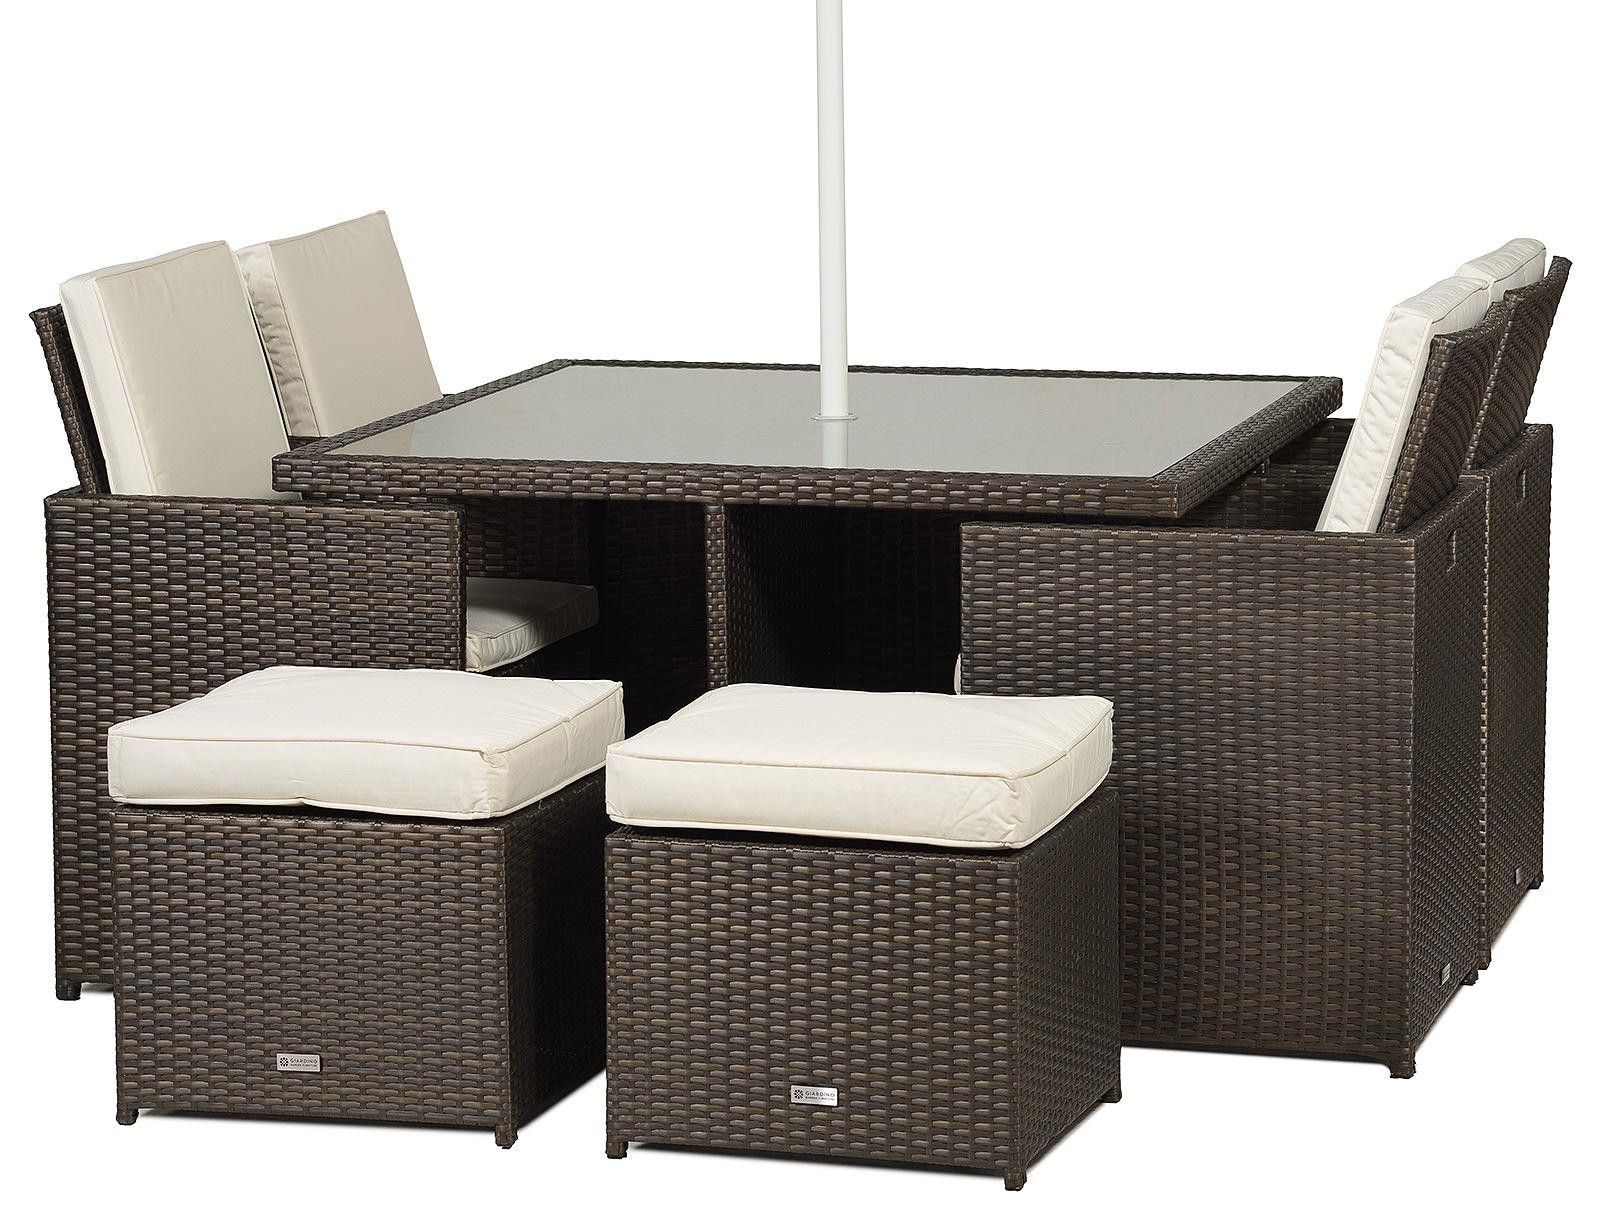 Set Giardino In Rattan.Giardino Rattan 4 Seater Cube Dining Table Chairs Set With 4